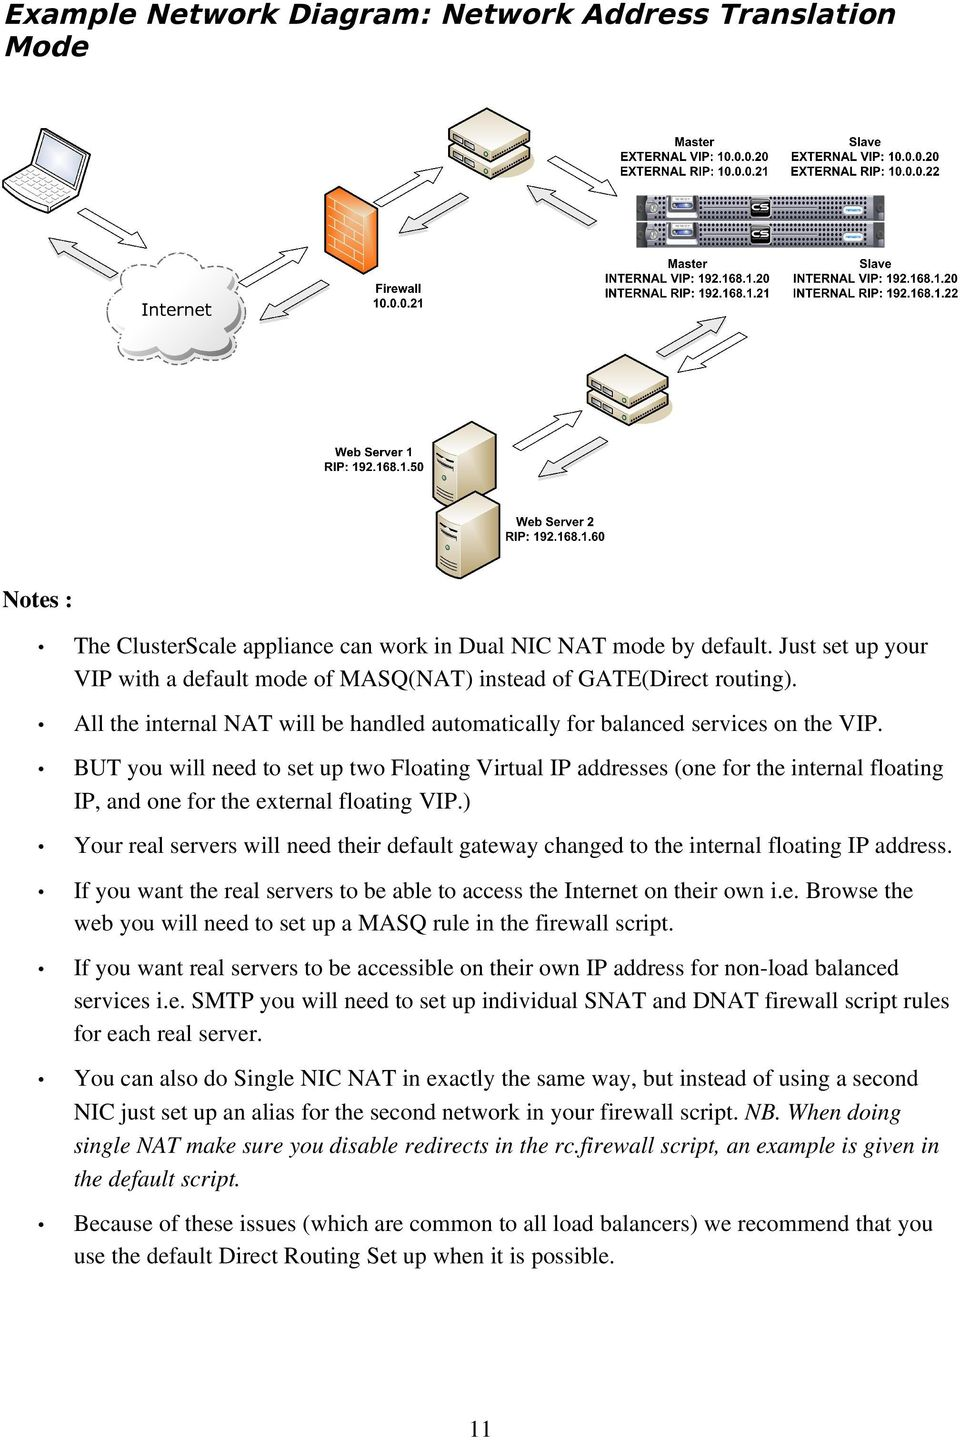 BUT you will need to set up two Floating Virtual IP addresses (one for the internal floating IP, and one for the external floating VIP.